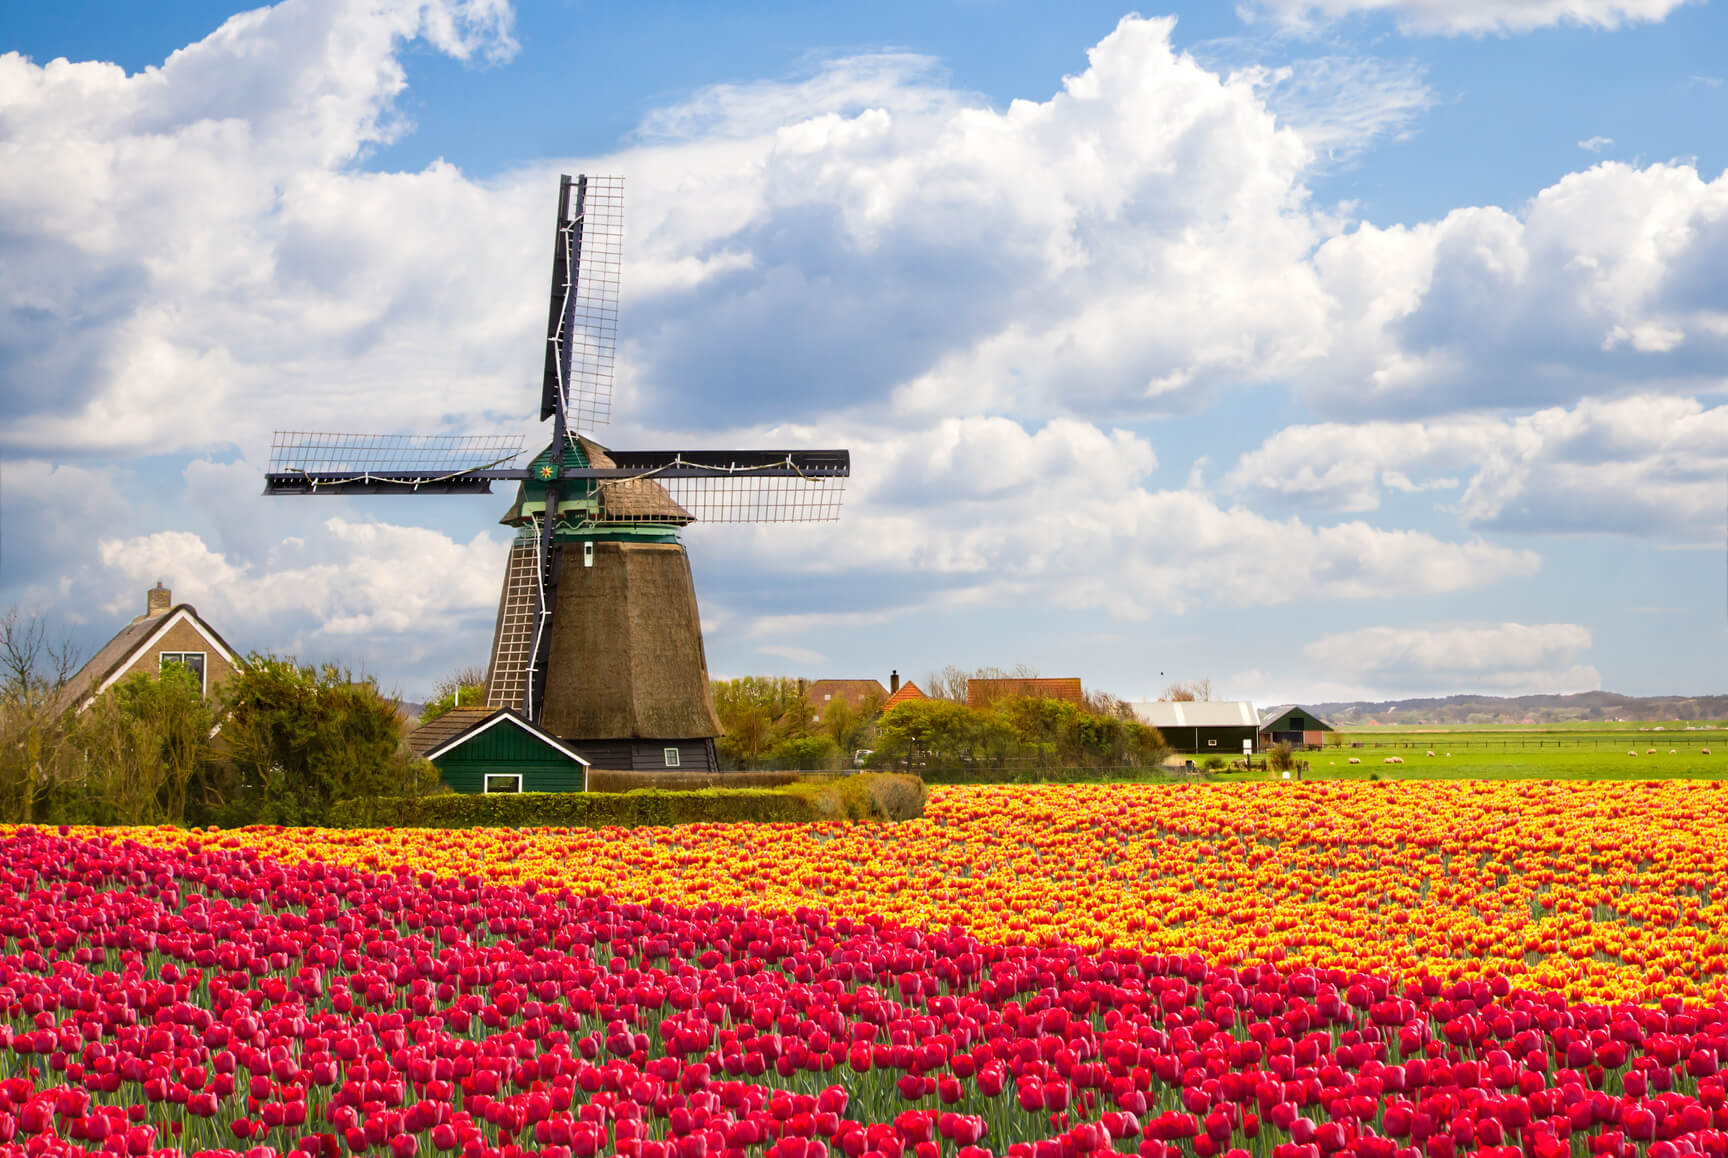 Toronto, Canada to Amsterdam, Netherlands for only $533 CAD roundtrip (Jan-Feb dates)